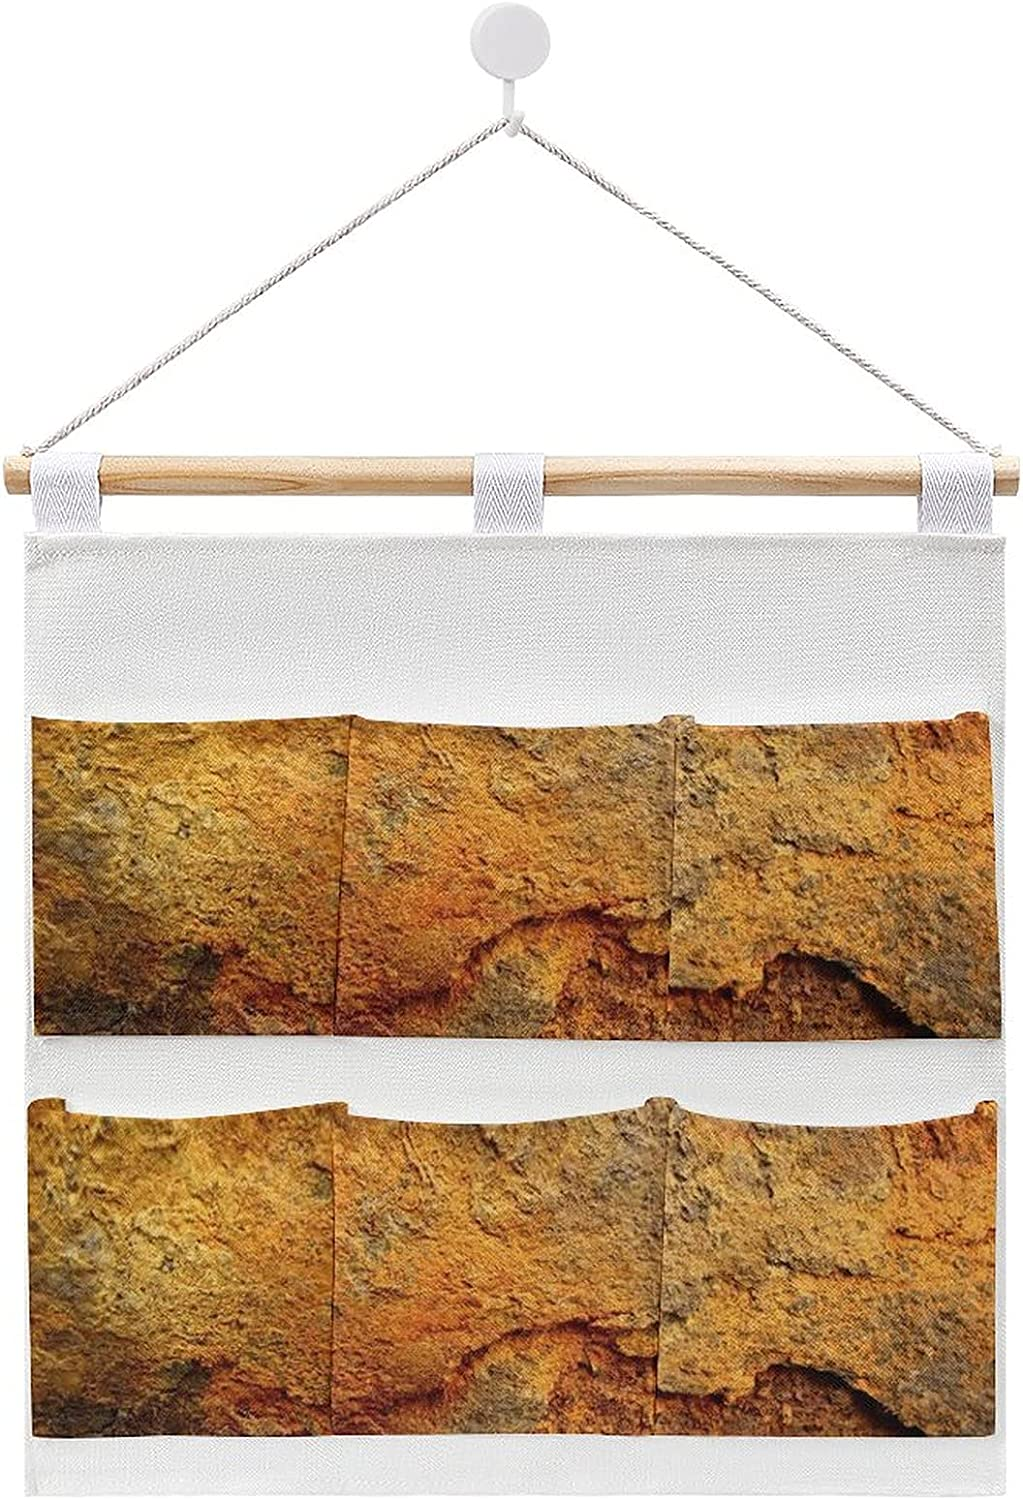 Background of Indefinitely Rusty Hanging Max 80% OFF cotton bag linen storage stable and